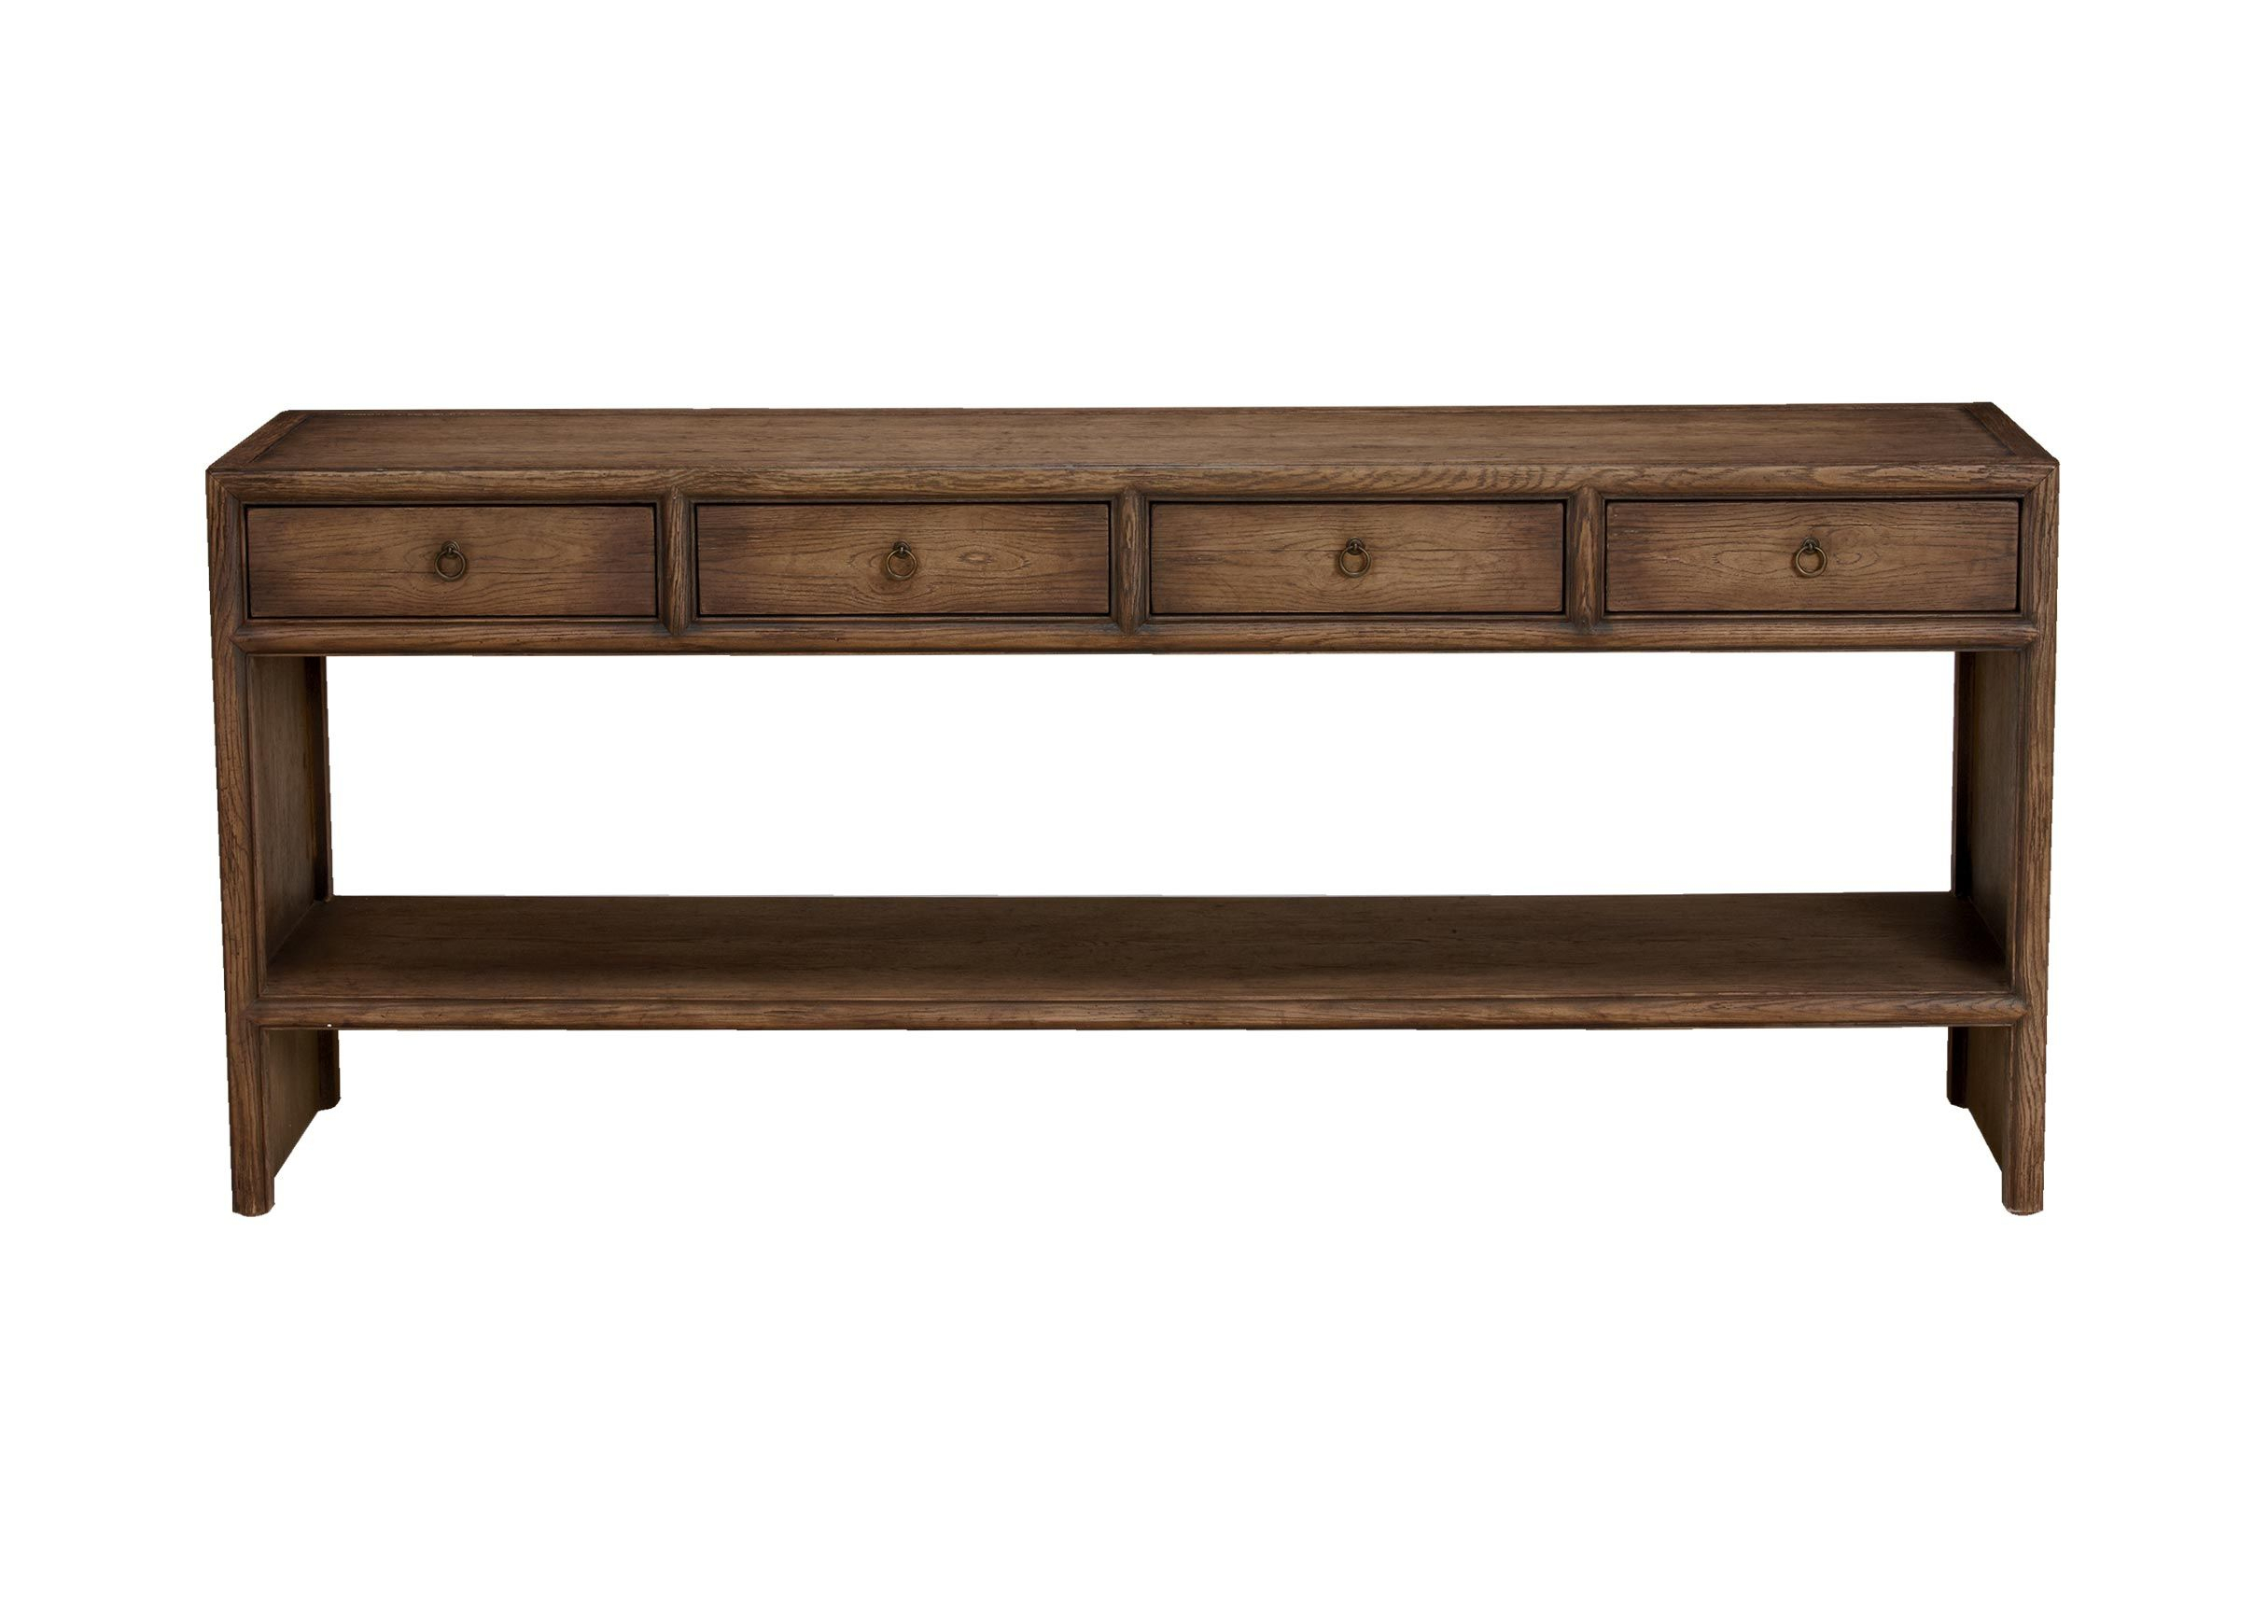 Large Shogun Console Table | Console Tables | Ethan Allen | Ethan With Regard To Ethan Console Tables (View 2 of 30)